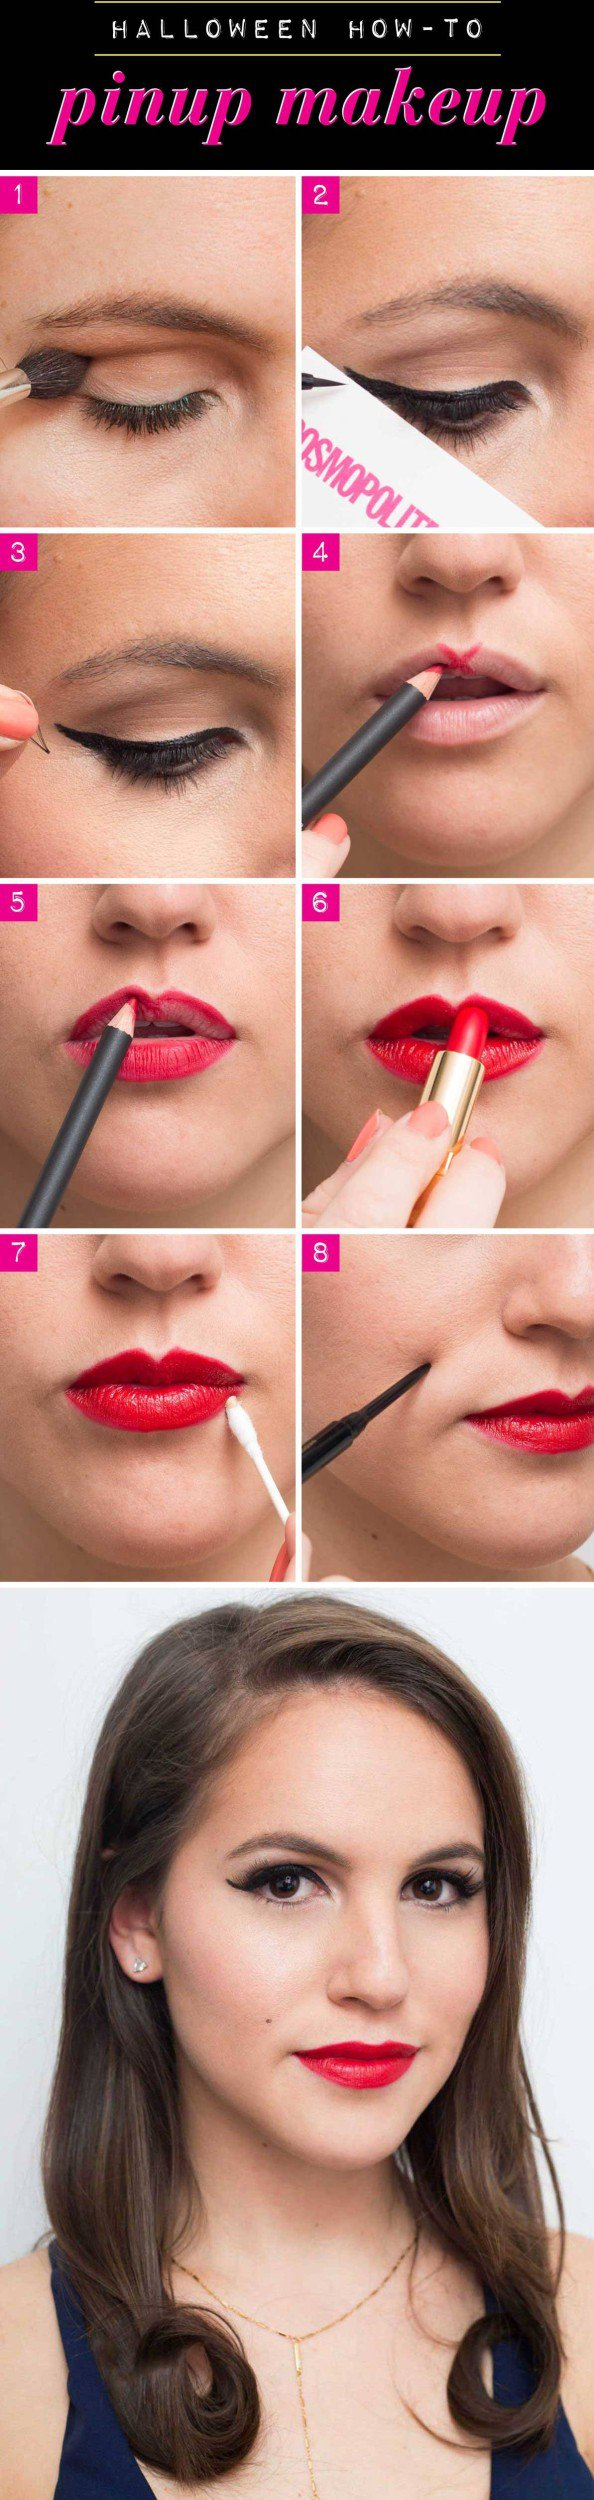 8 Super Easy Halloween Looks That You Can Create With Makeup That You Already Have